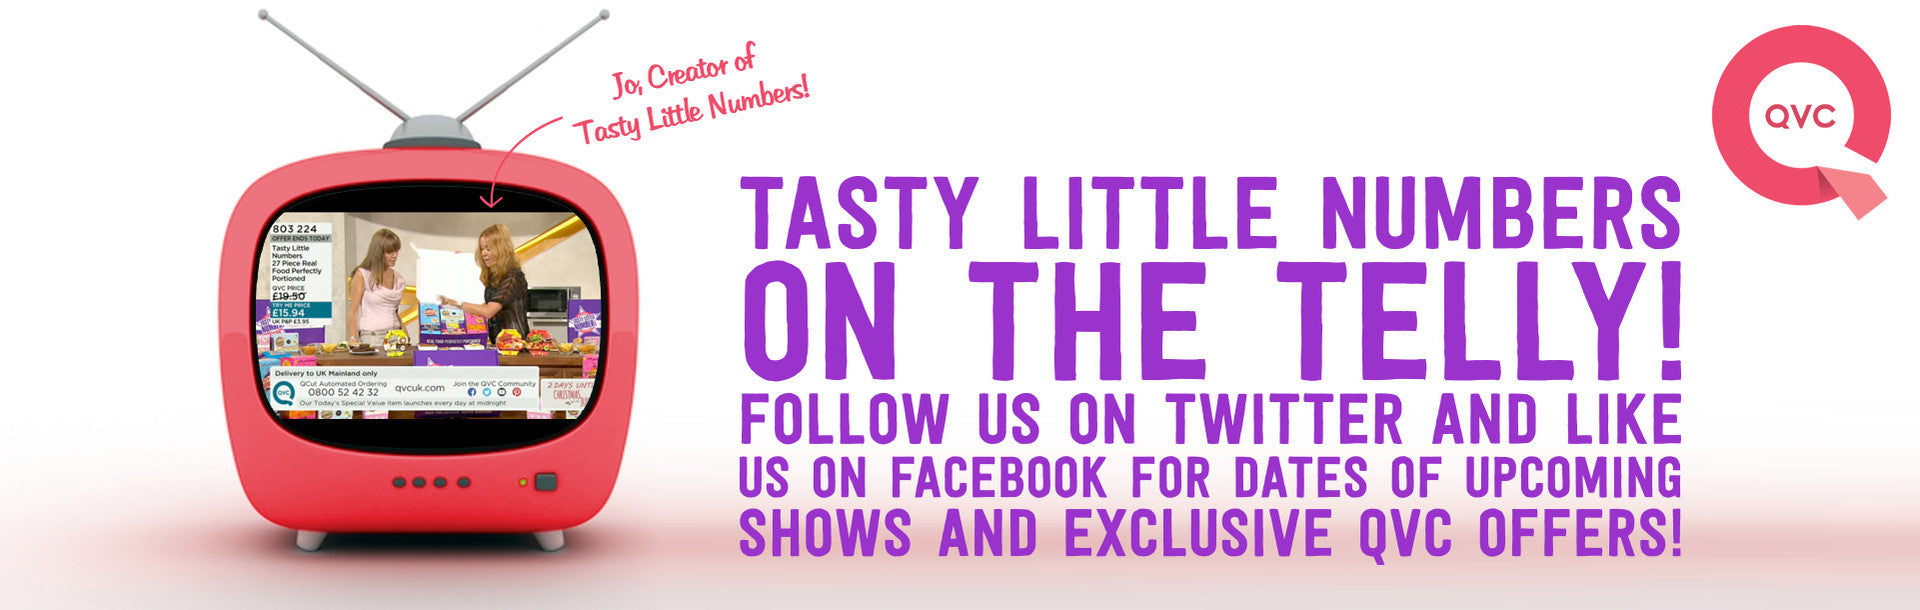 WIN A TASTY LITTLE NUMBERS 100 CALORIE GOODY BOX!